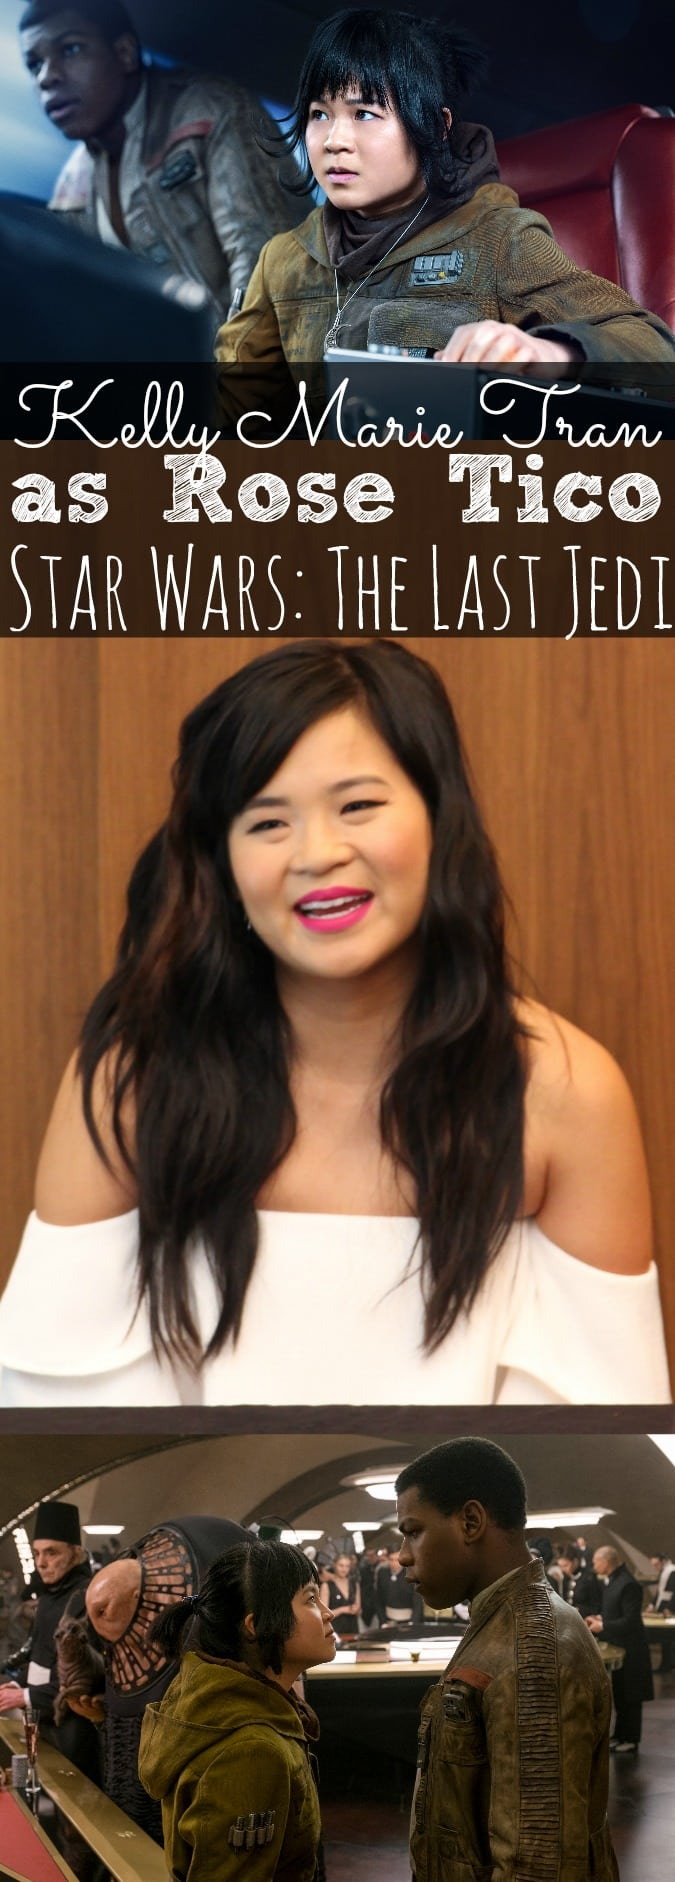 Interview with Kelly Marie Tran On Her Role As Rose Tico In Star Wars: The Last Jedi (ad) #TheLastJediEvent - simplytodaylife.com